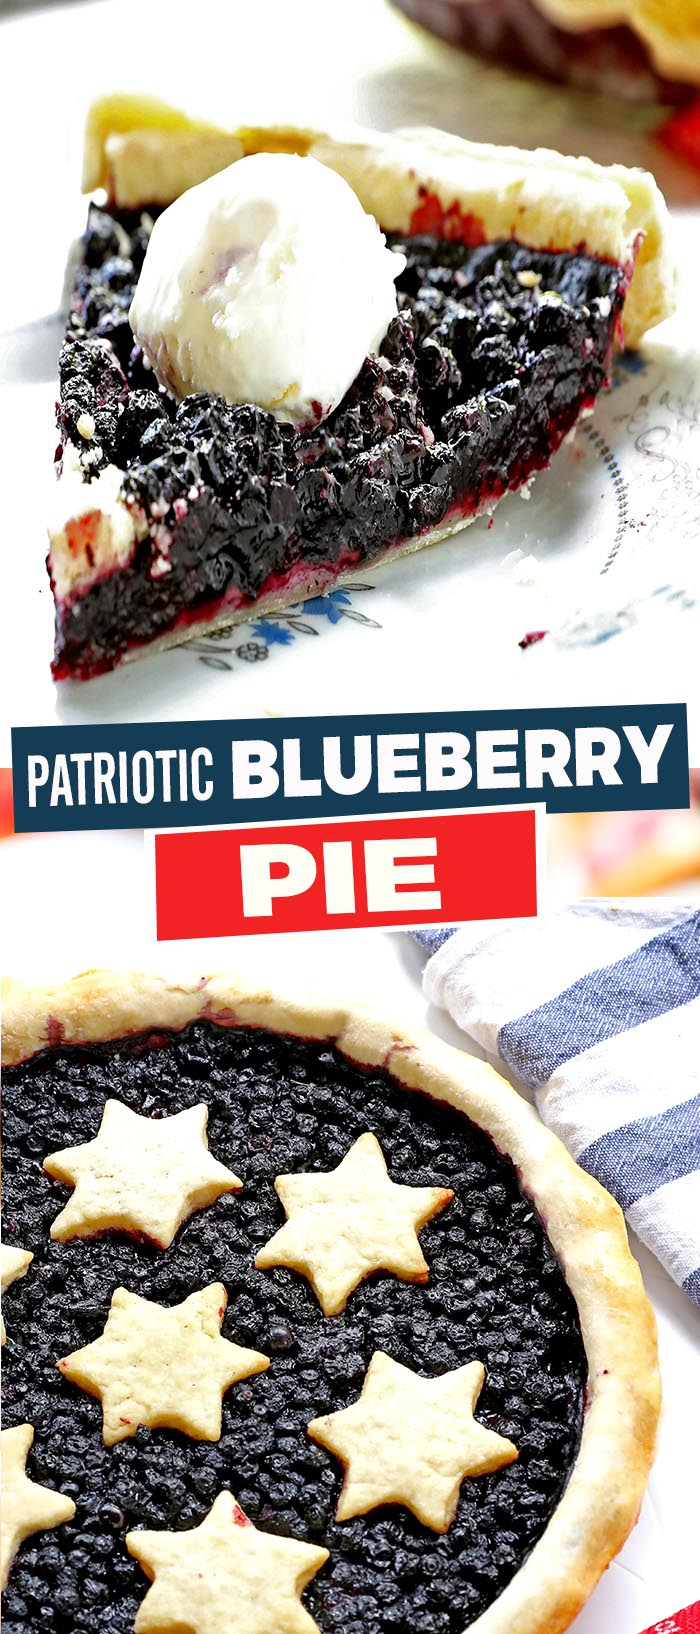 Simple, classic blueberry pie! With a homemade crust and patriotic decorations. Perfect for the summer season, or any of your fun patriotic parties and activities.